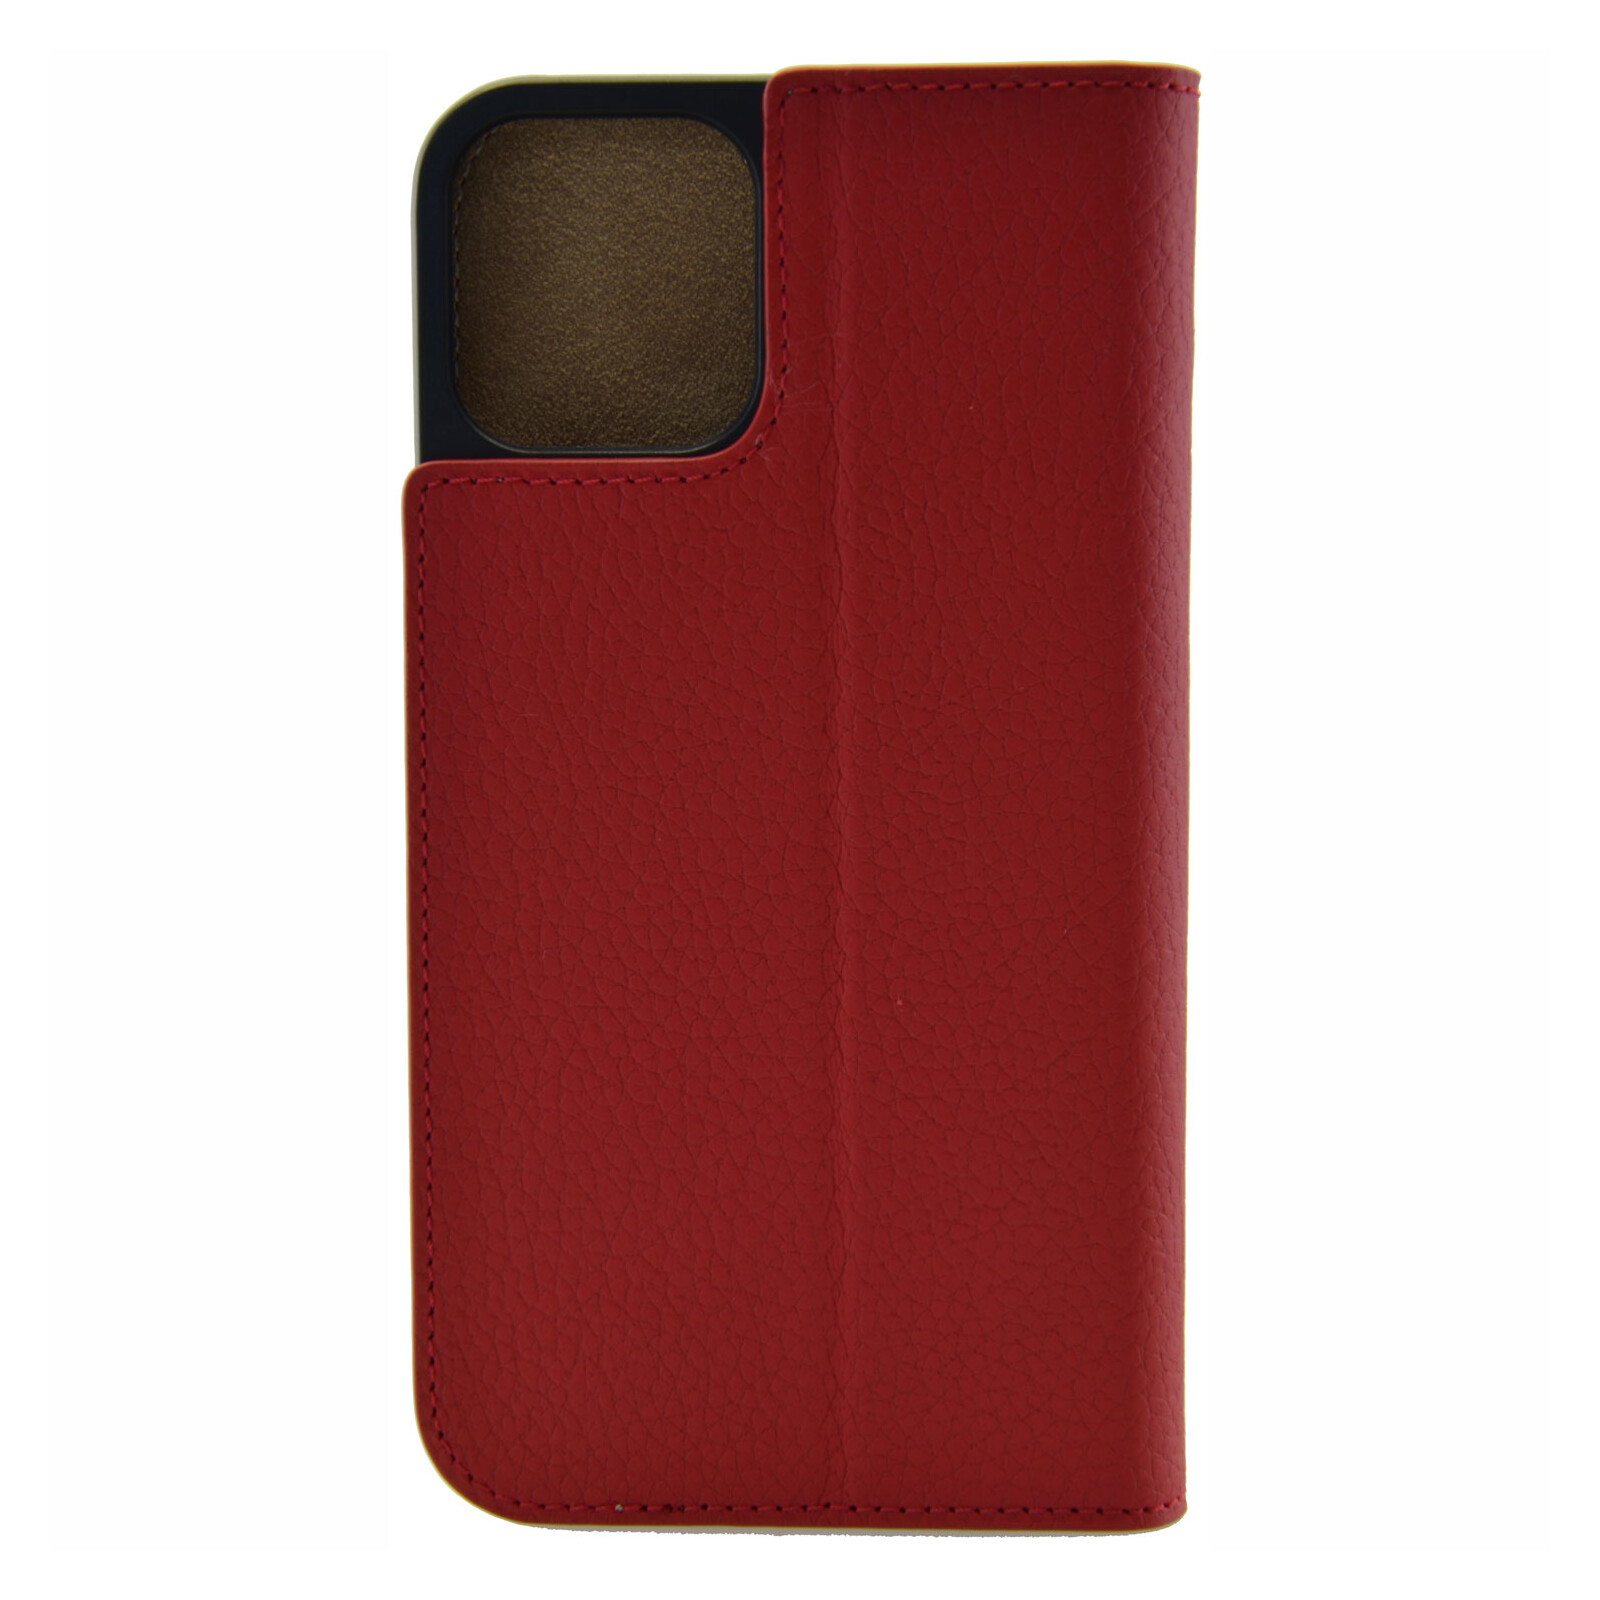 Galeli Booktasche MARC Apple iPhone 12 Max/Pro swiss red